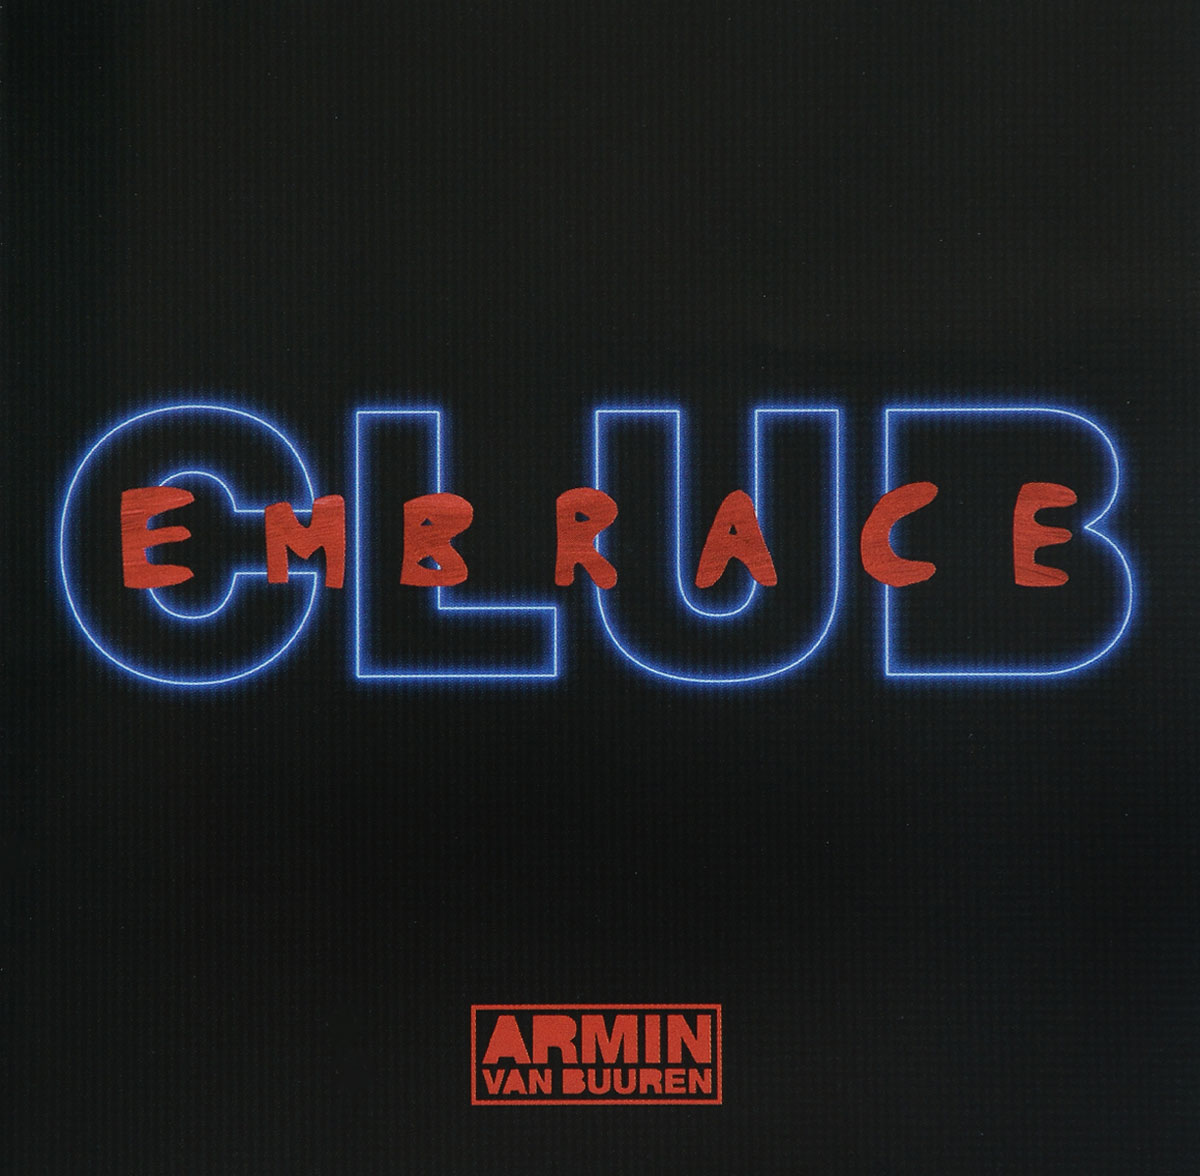 цена Армин Ван Бюрен Armin Van Buuren. Club Embrace (2 CD) онлайн в 2017 году